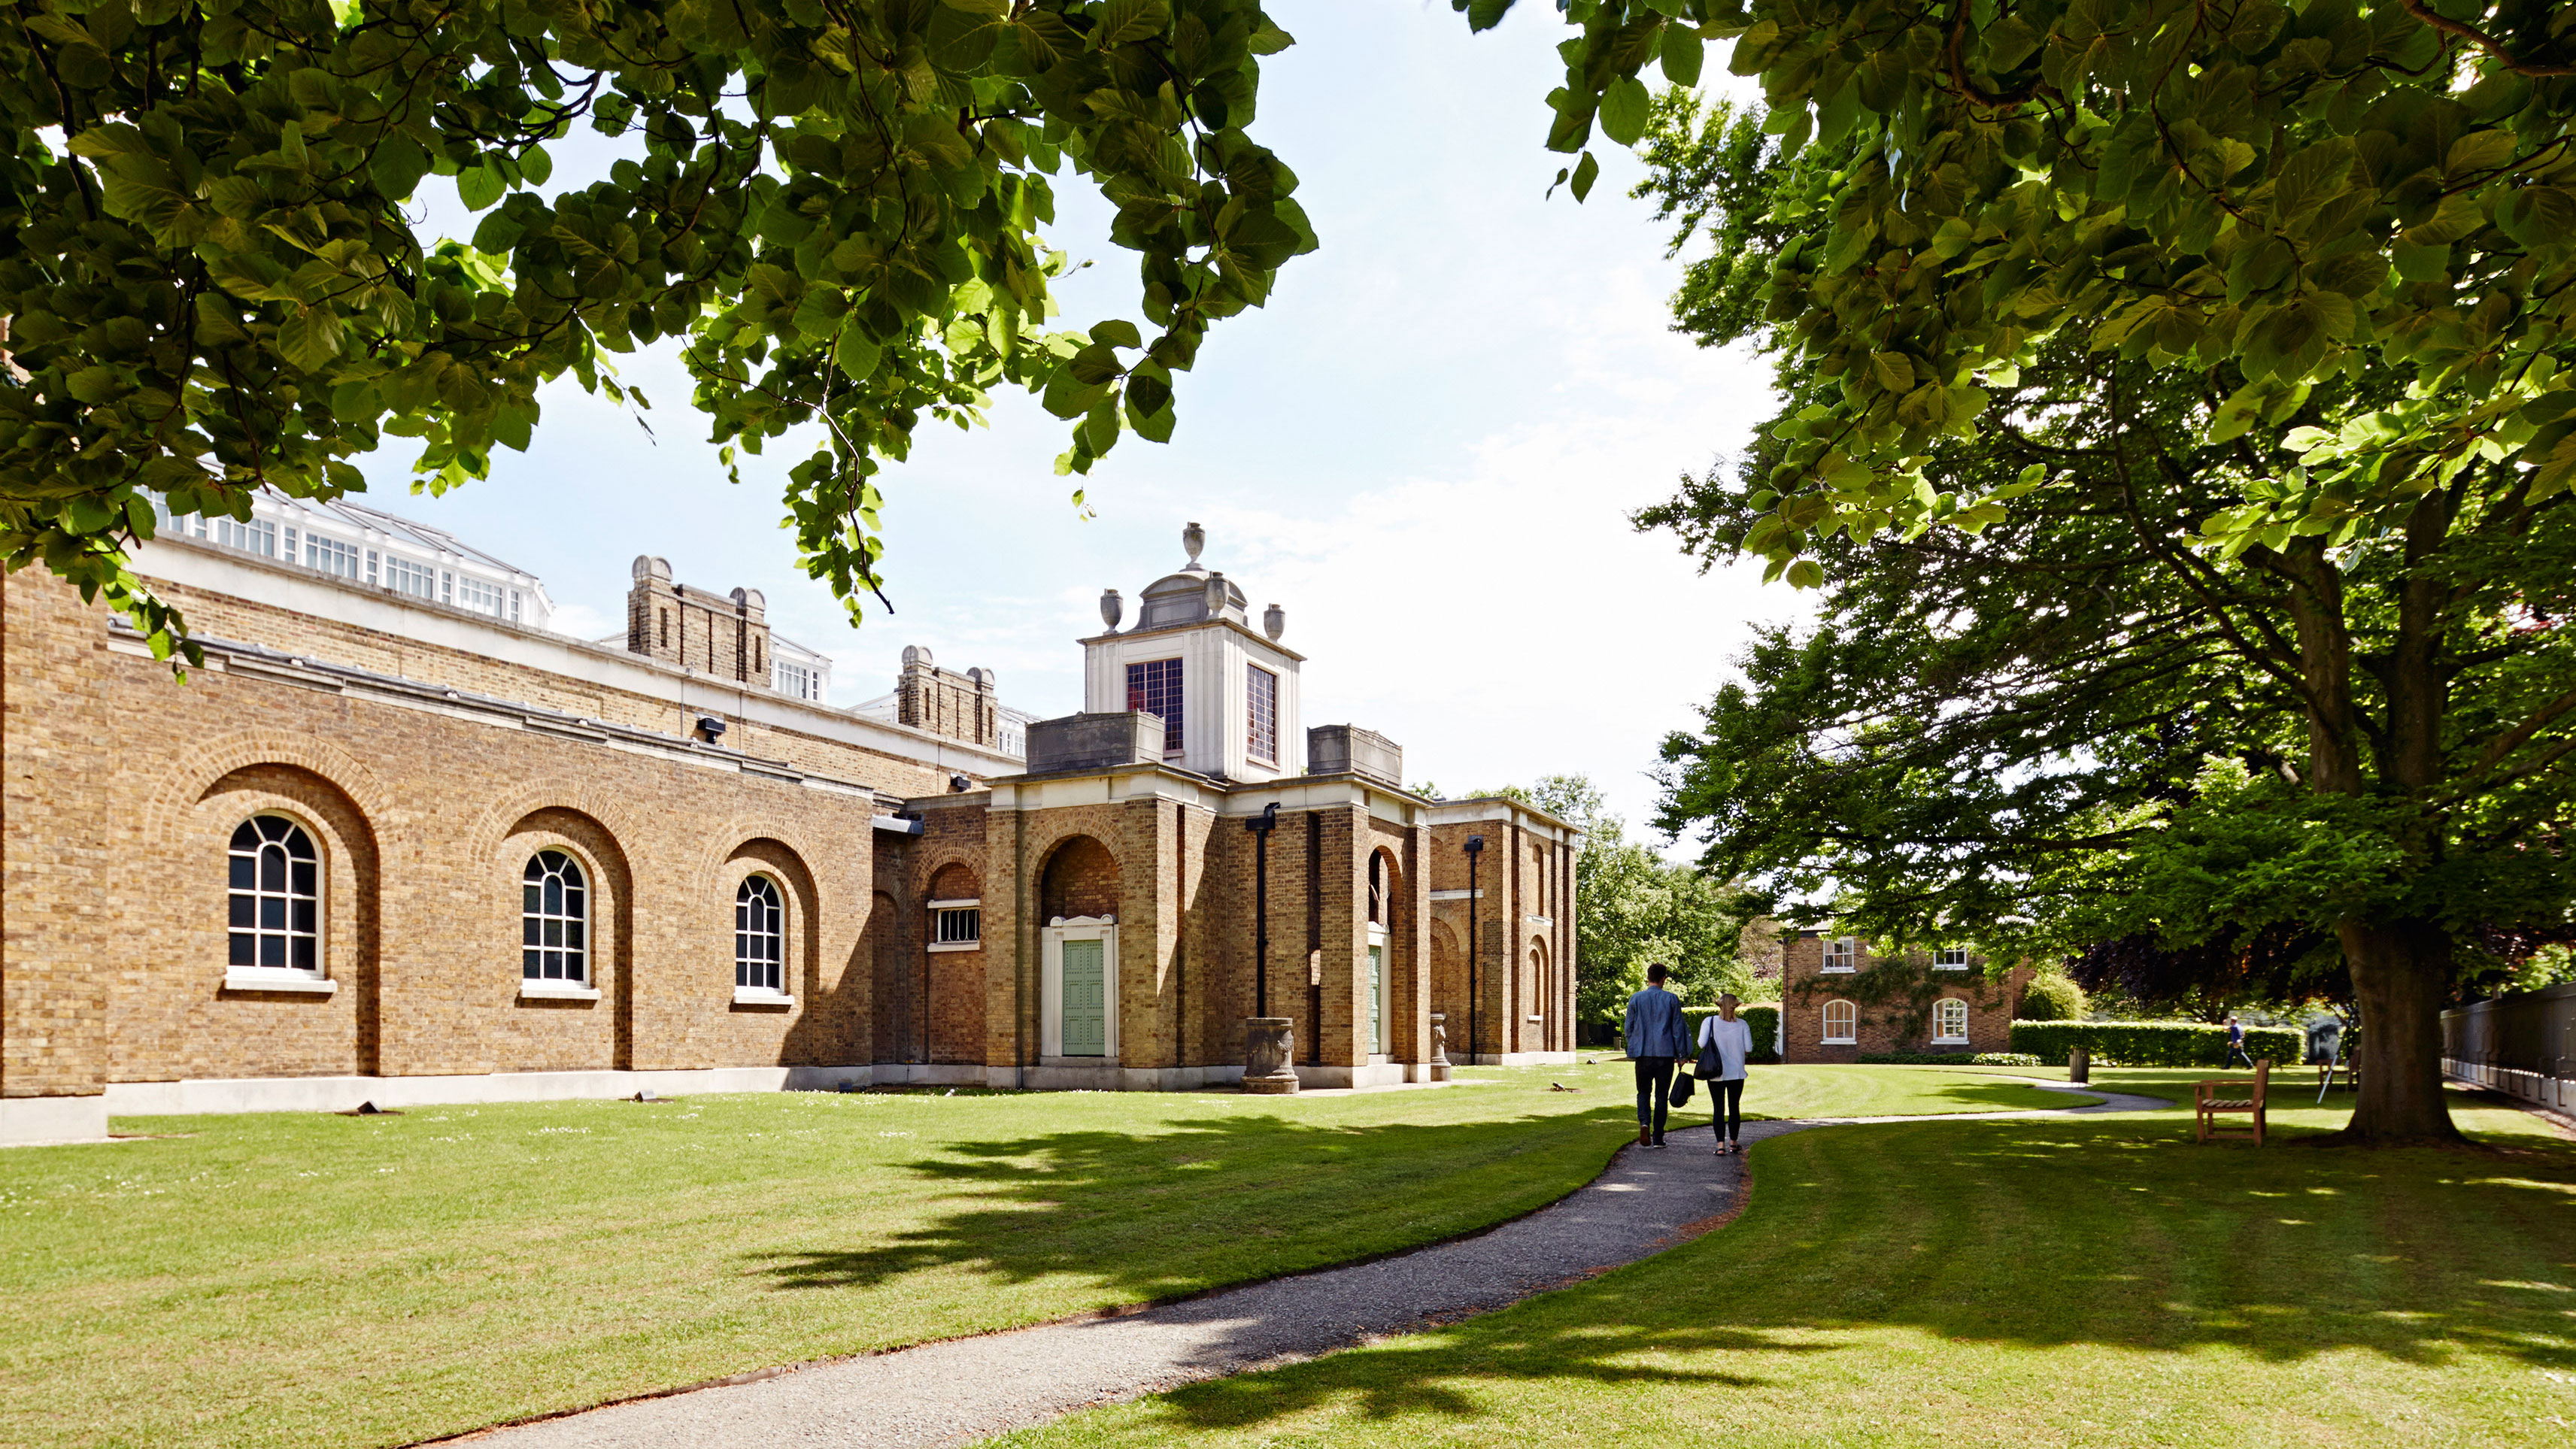 Dulwich Picture Gallery and grounds